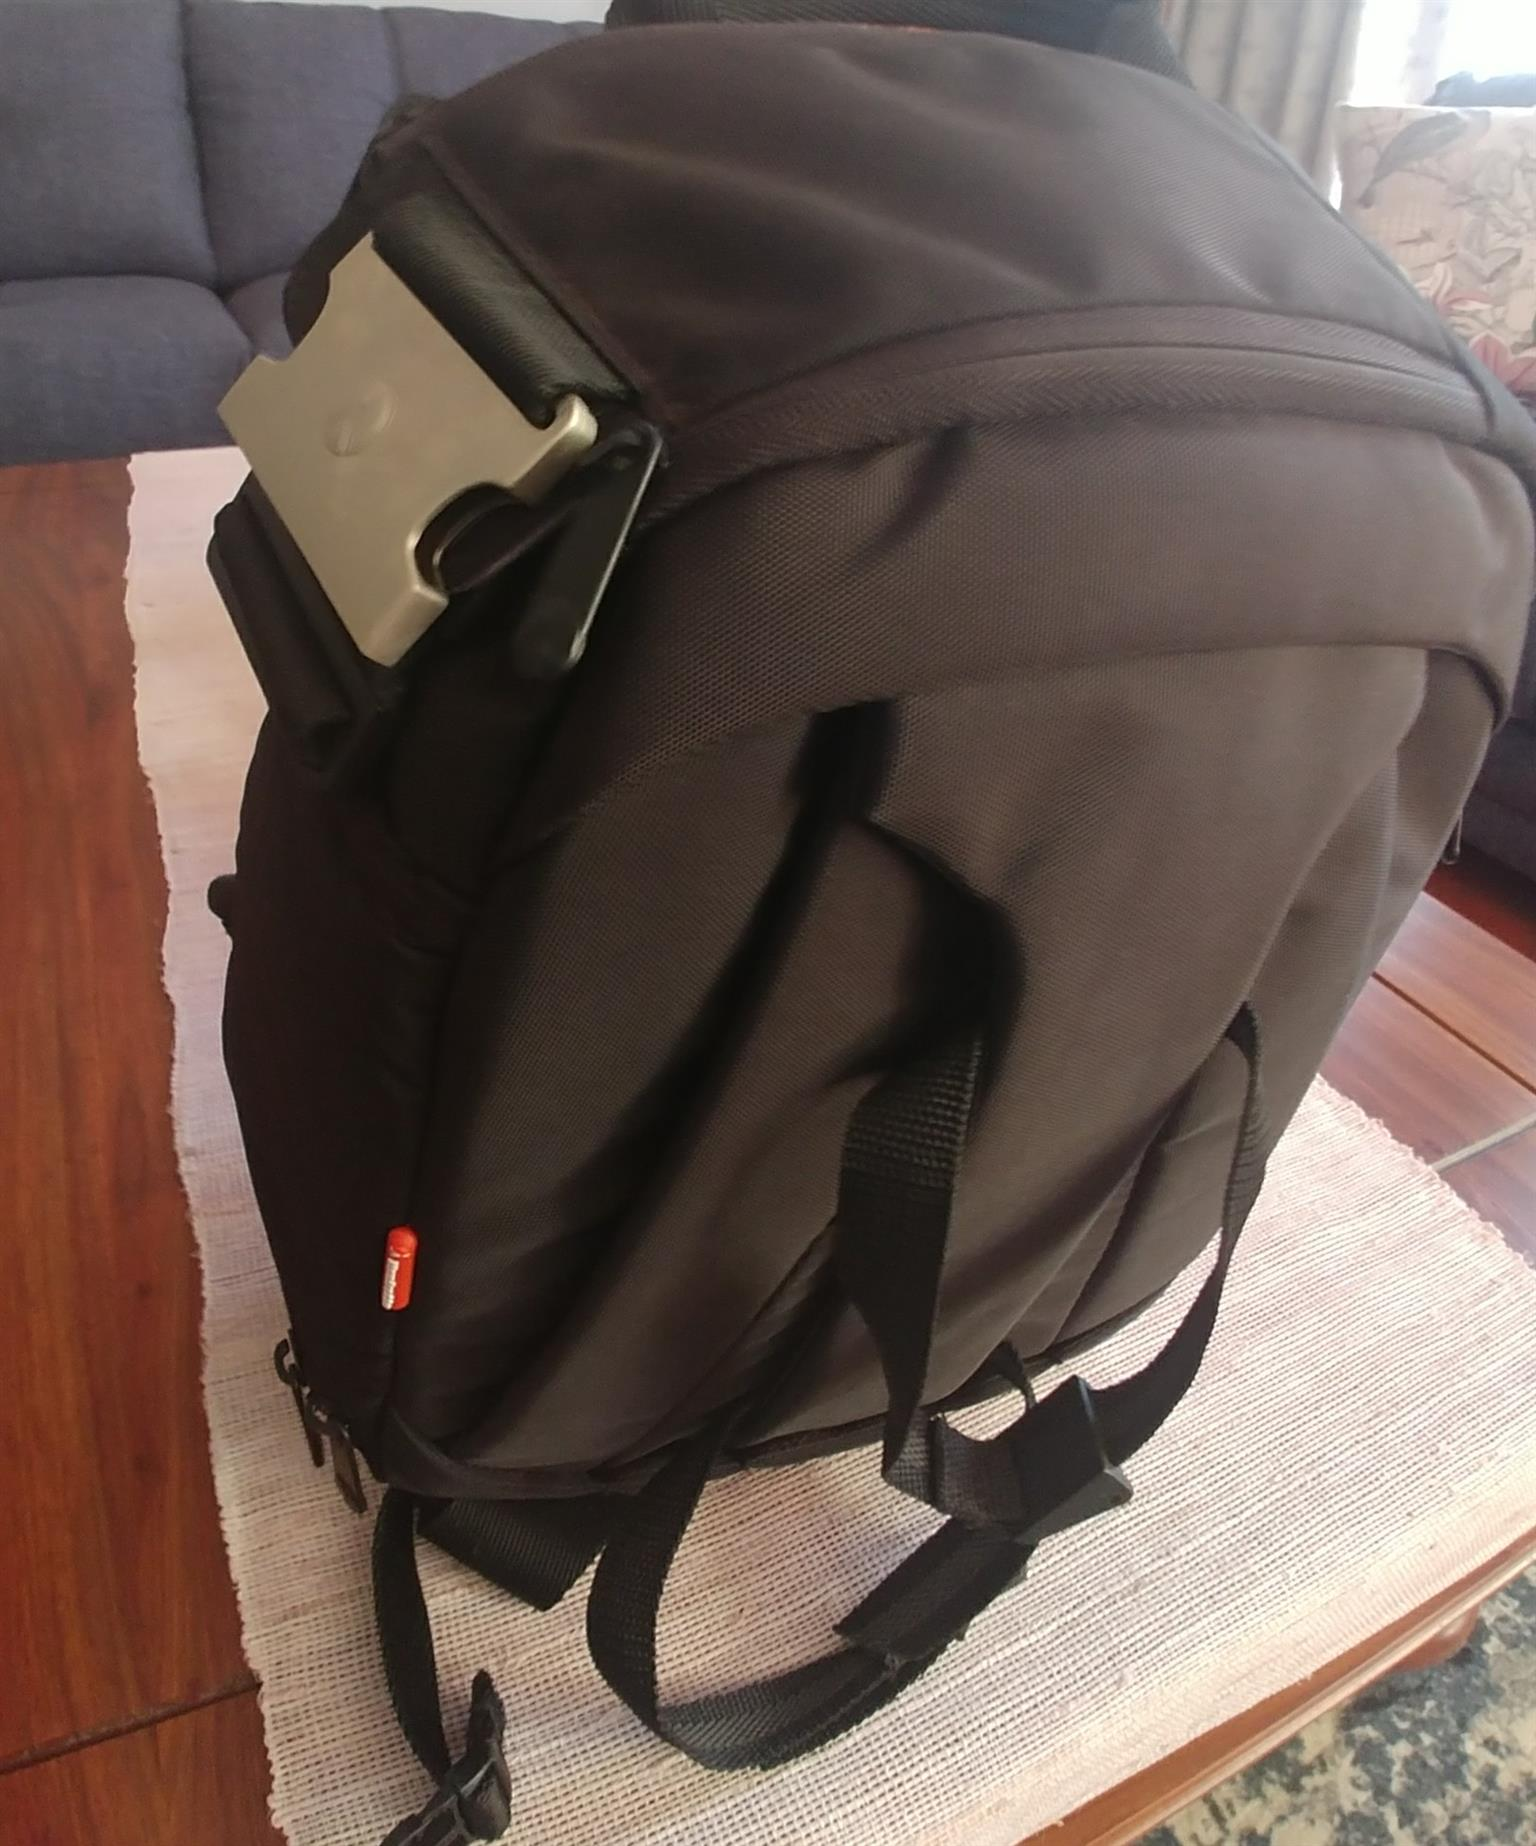 Camera Bag Junk Mail Vanguard Veo 42 Backpack